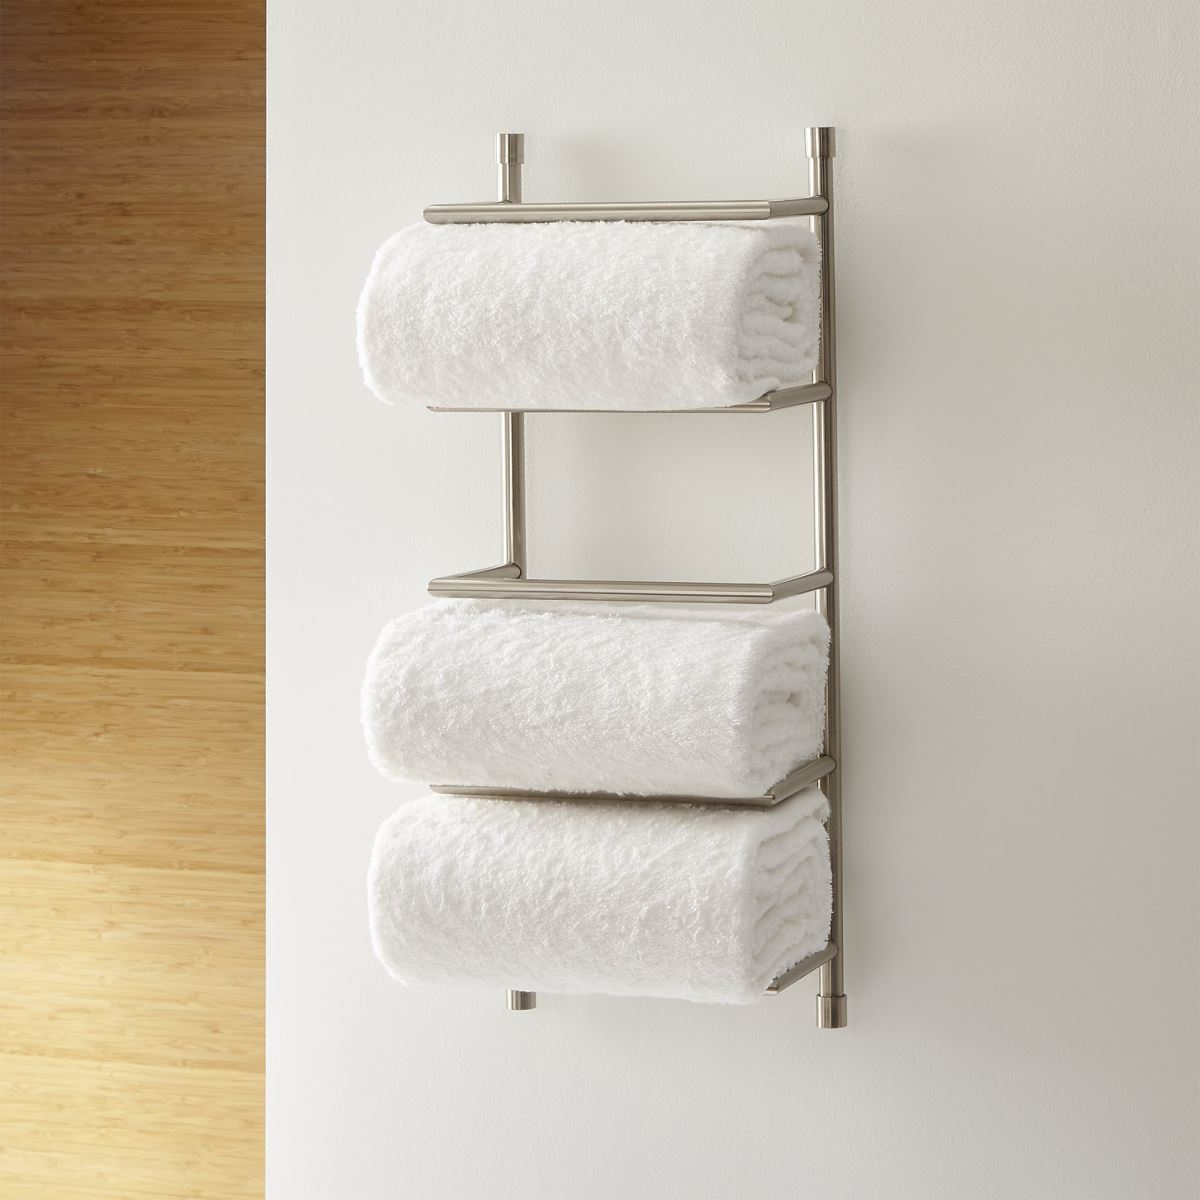 Wall-mounted towel rack from Crate & Barrel